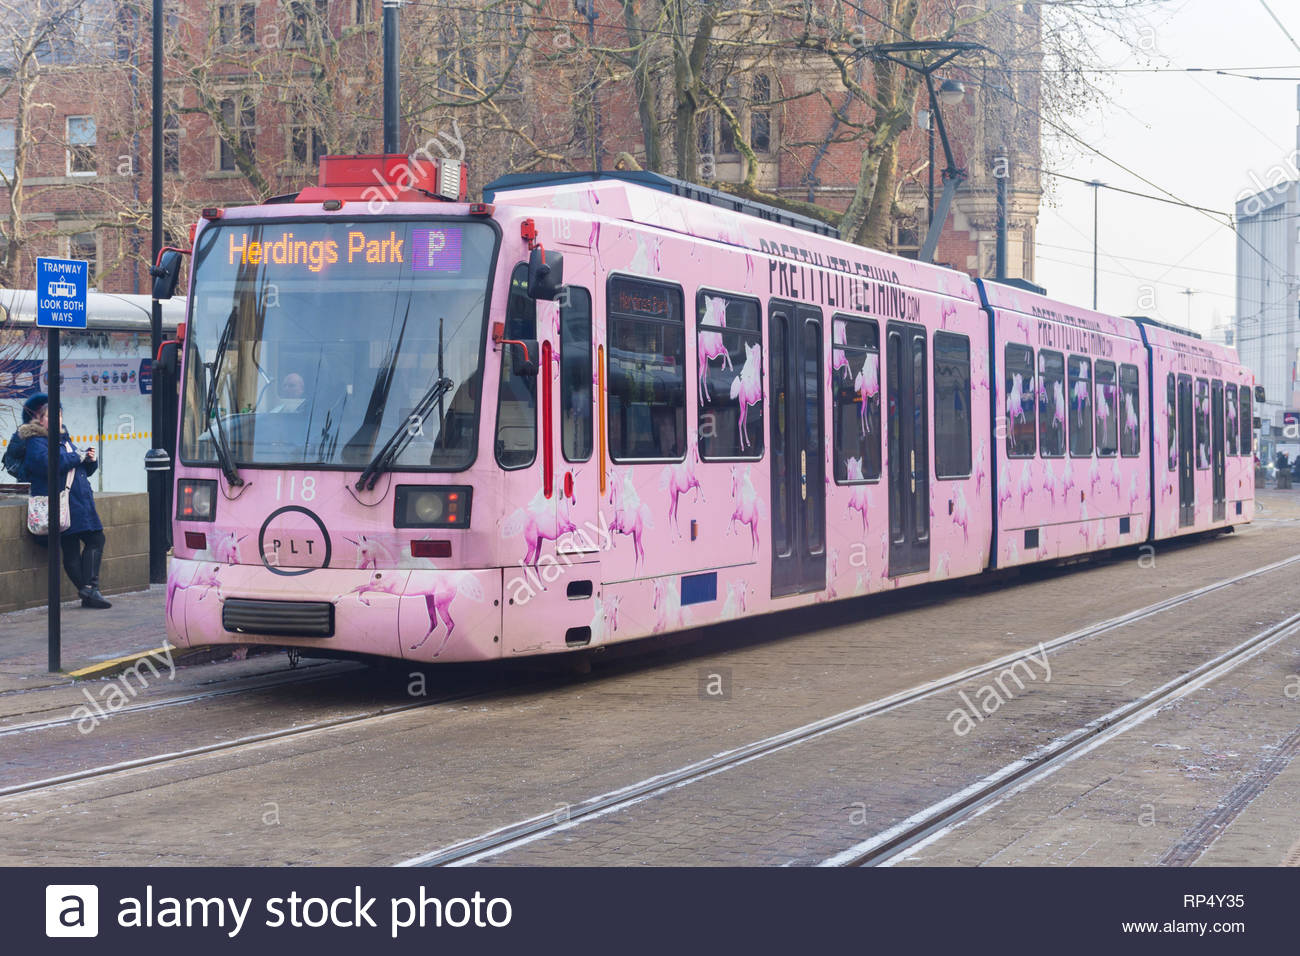 A pink Supertram advertising Pretty Little Thing at the tram stop in Cathedral Square in Sheffield, South Yorkshire, England, UK - Stock Image